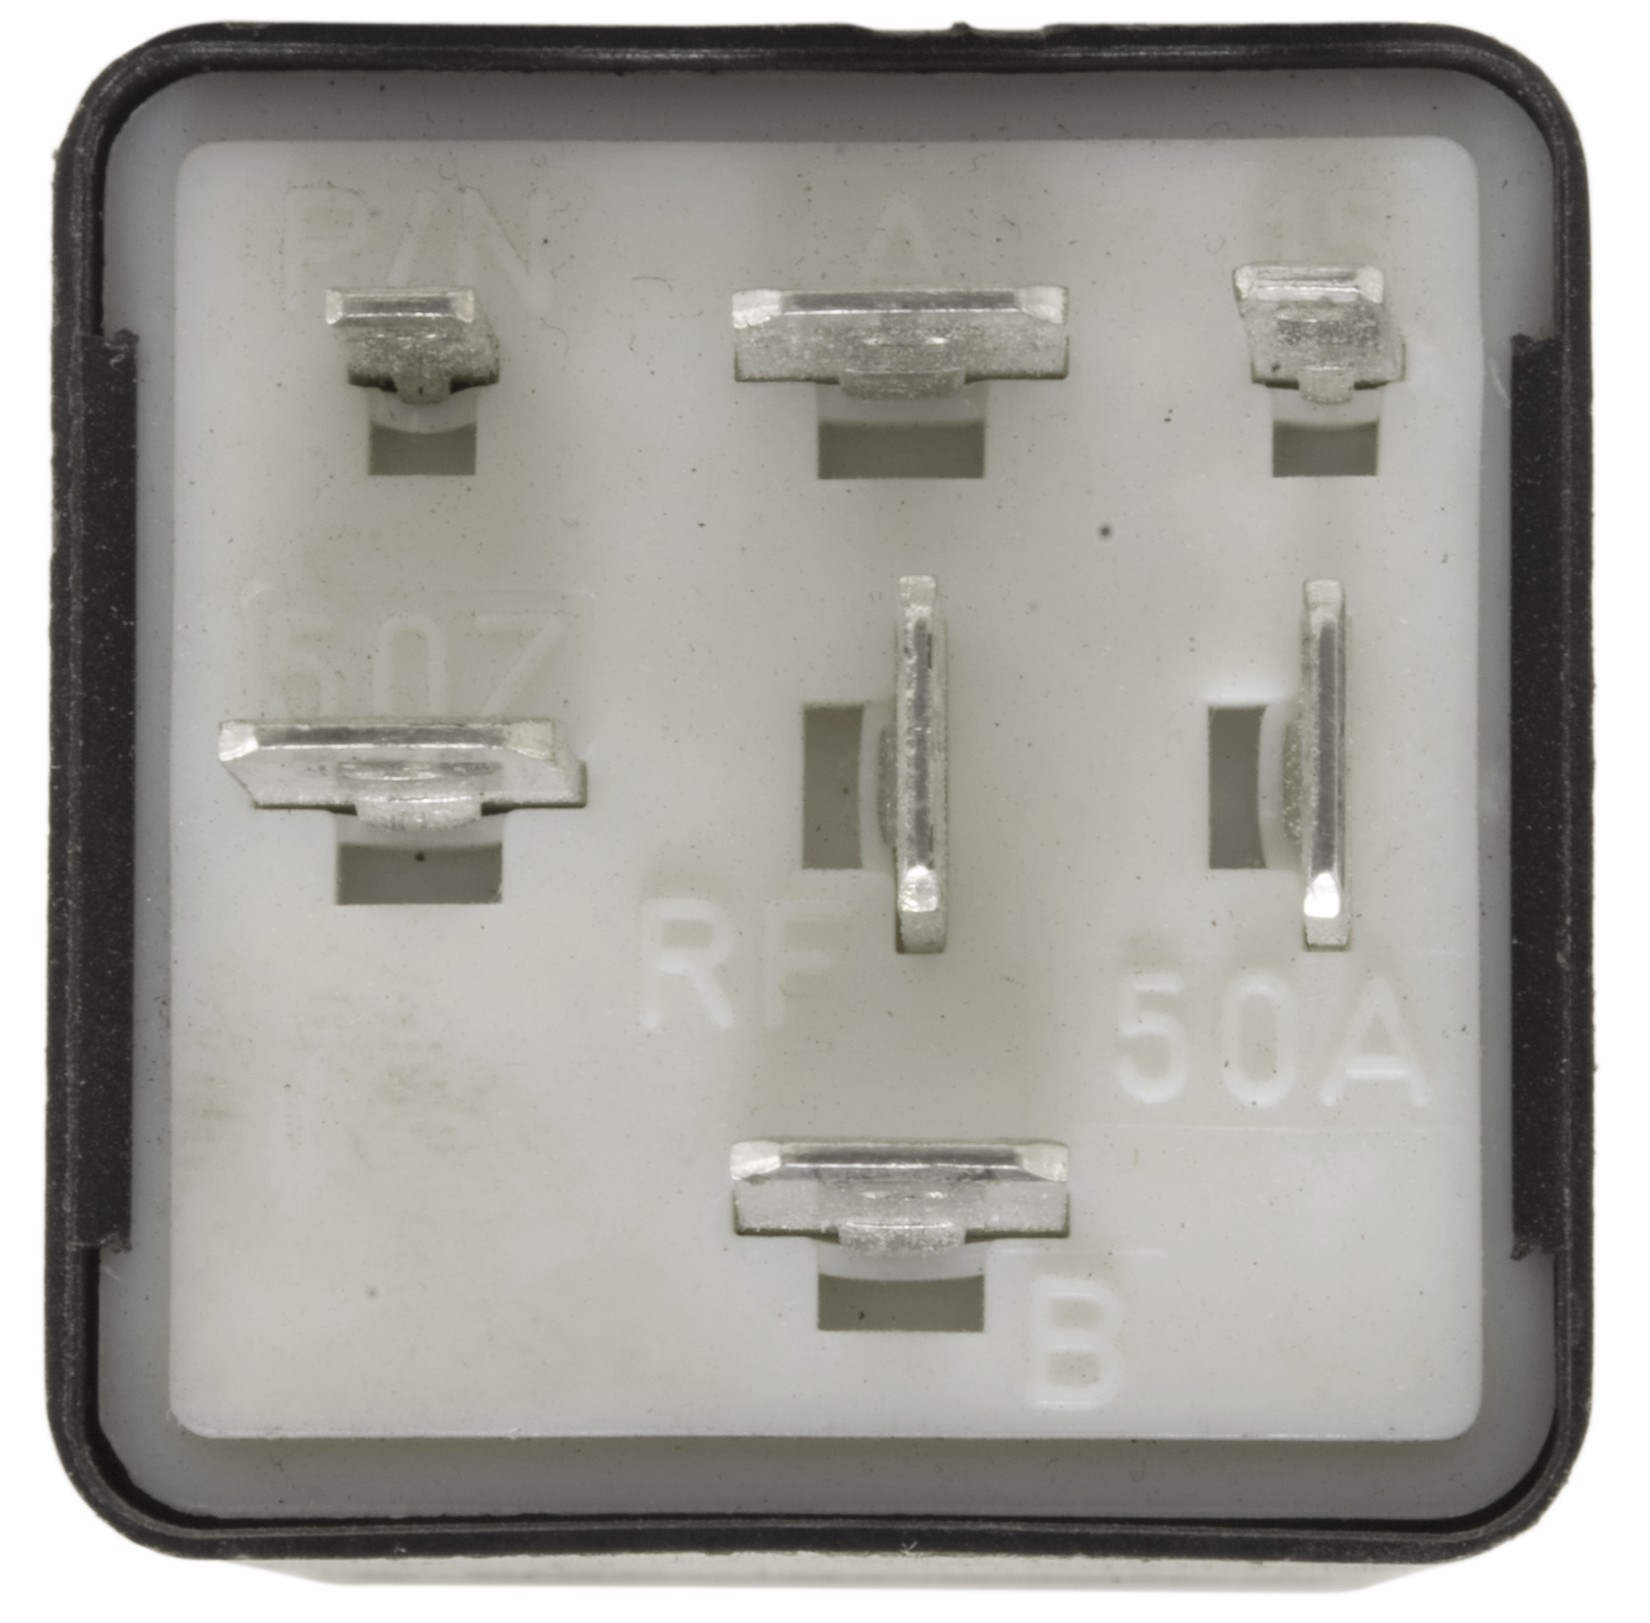 WELLS - Neutral Safety Switch Relay - WEL 19995